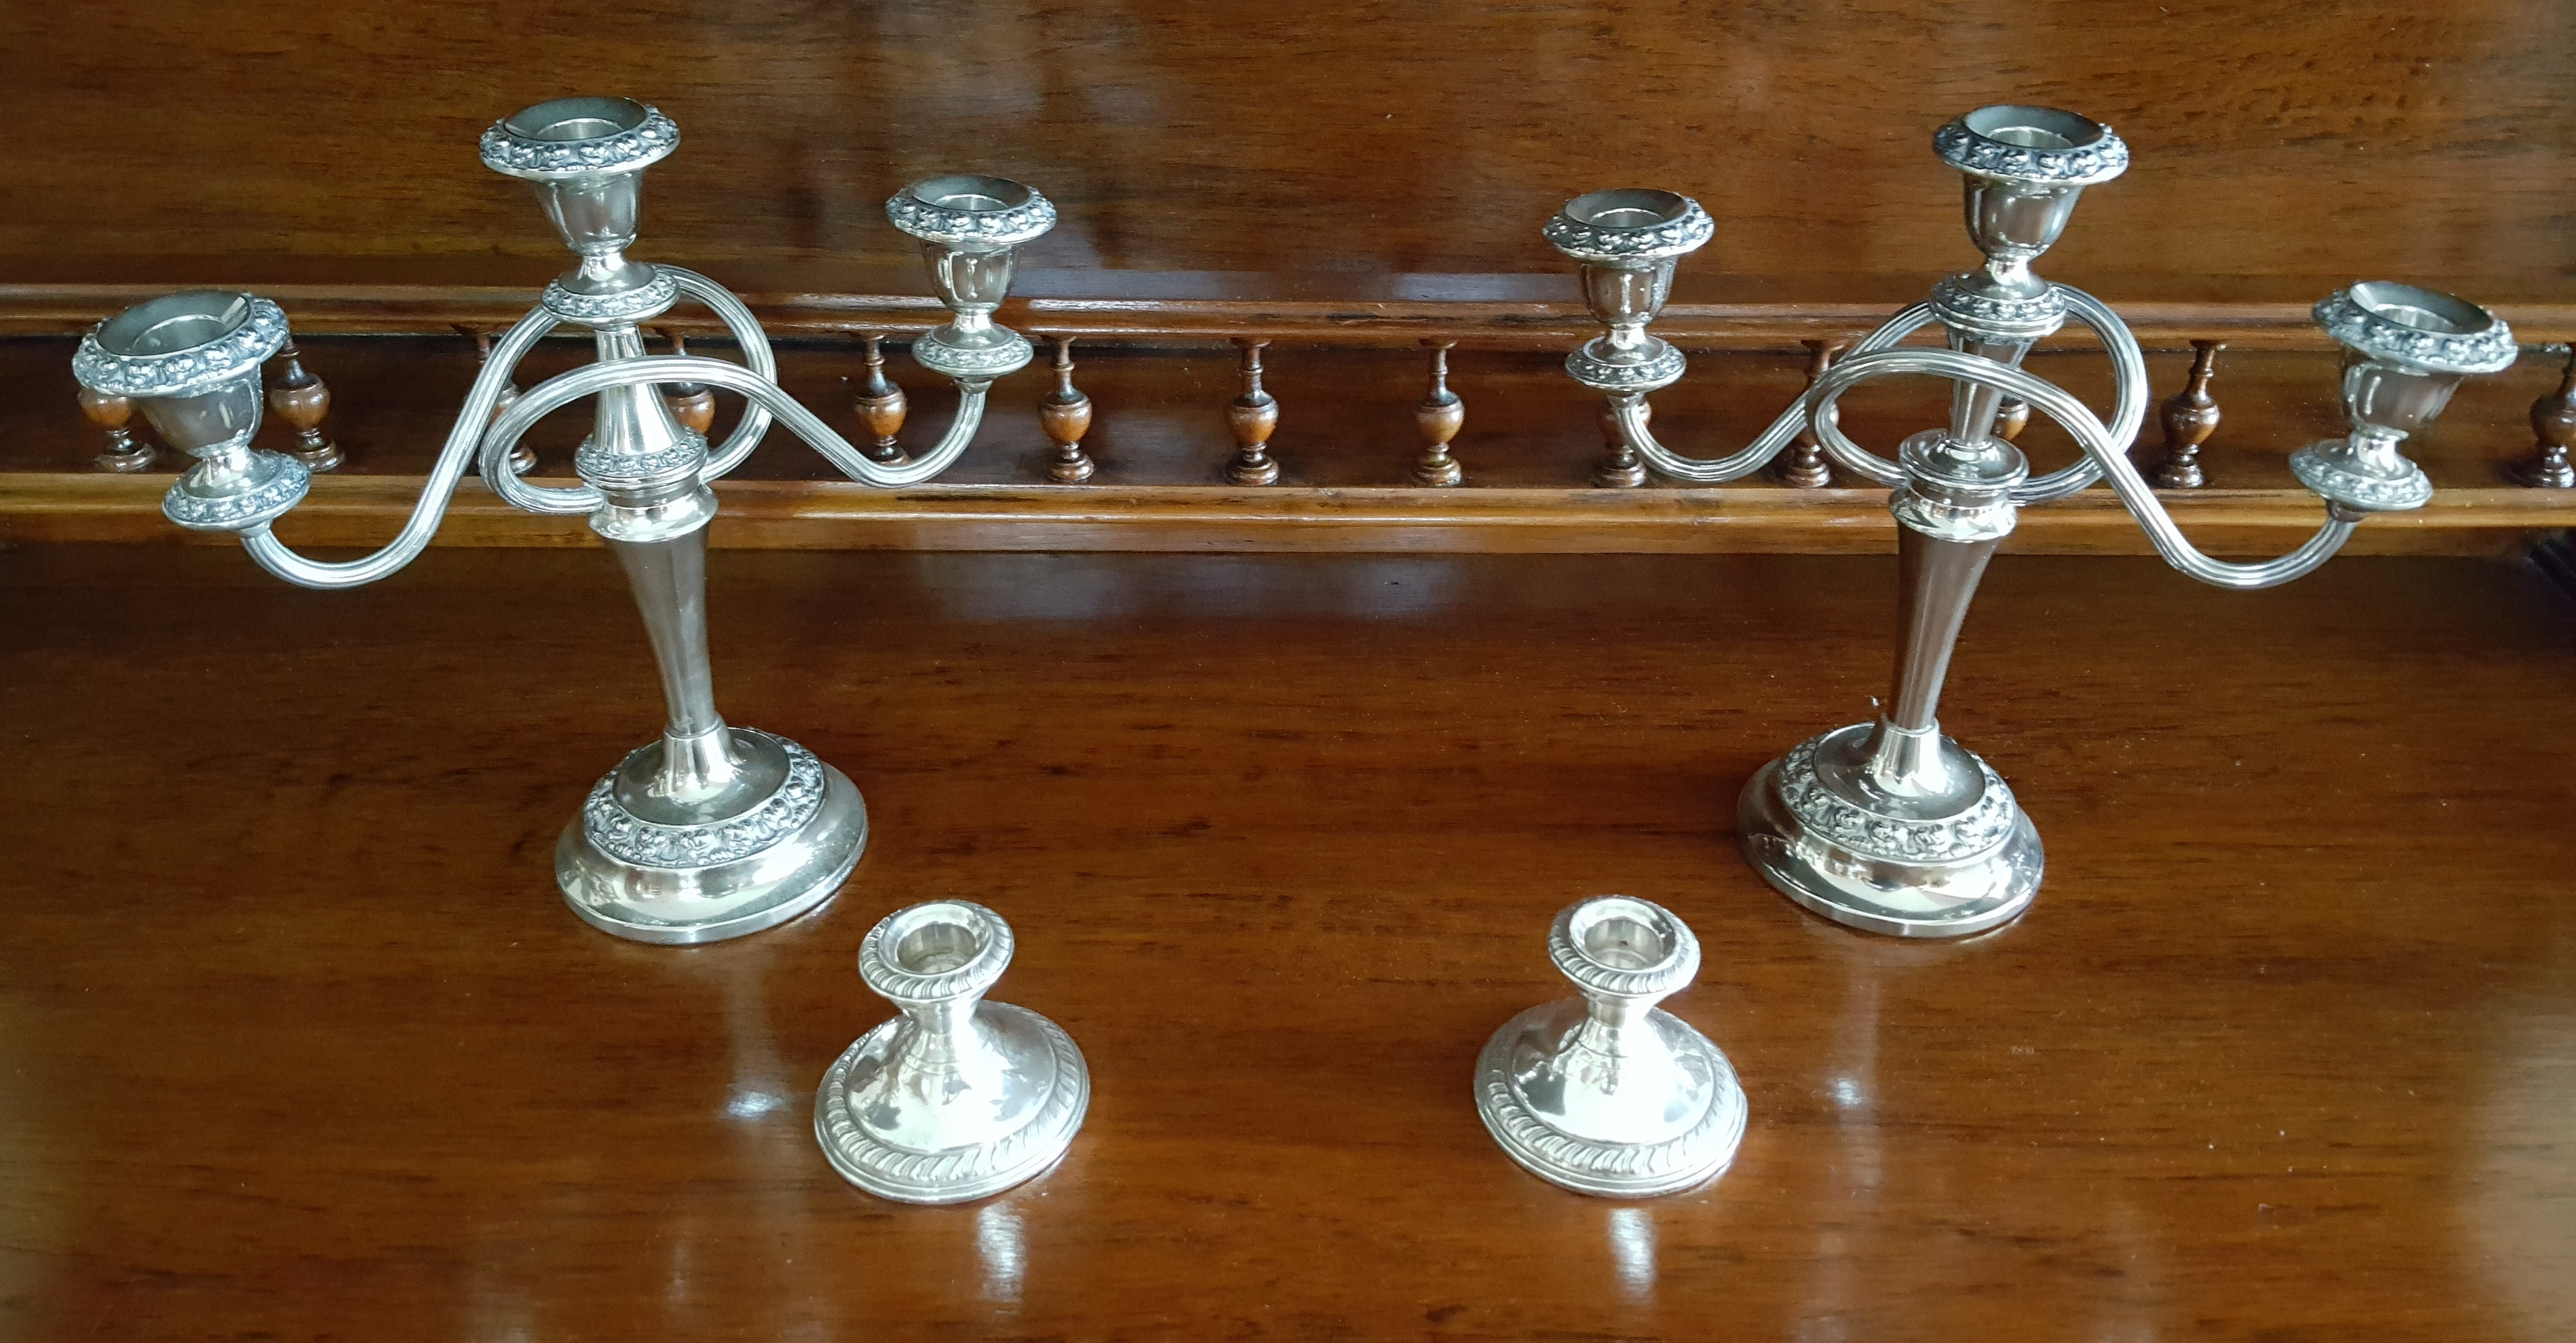 Antique Silver plated Candle Holder set